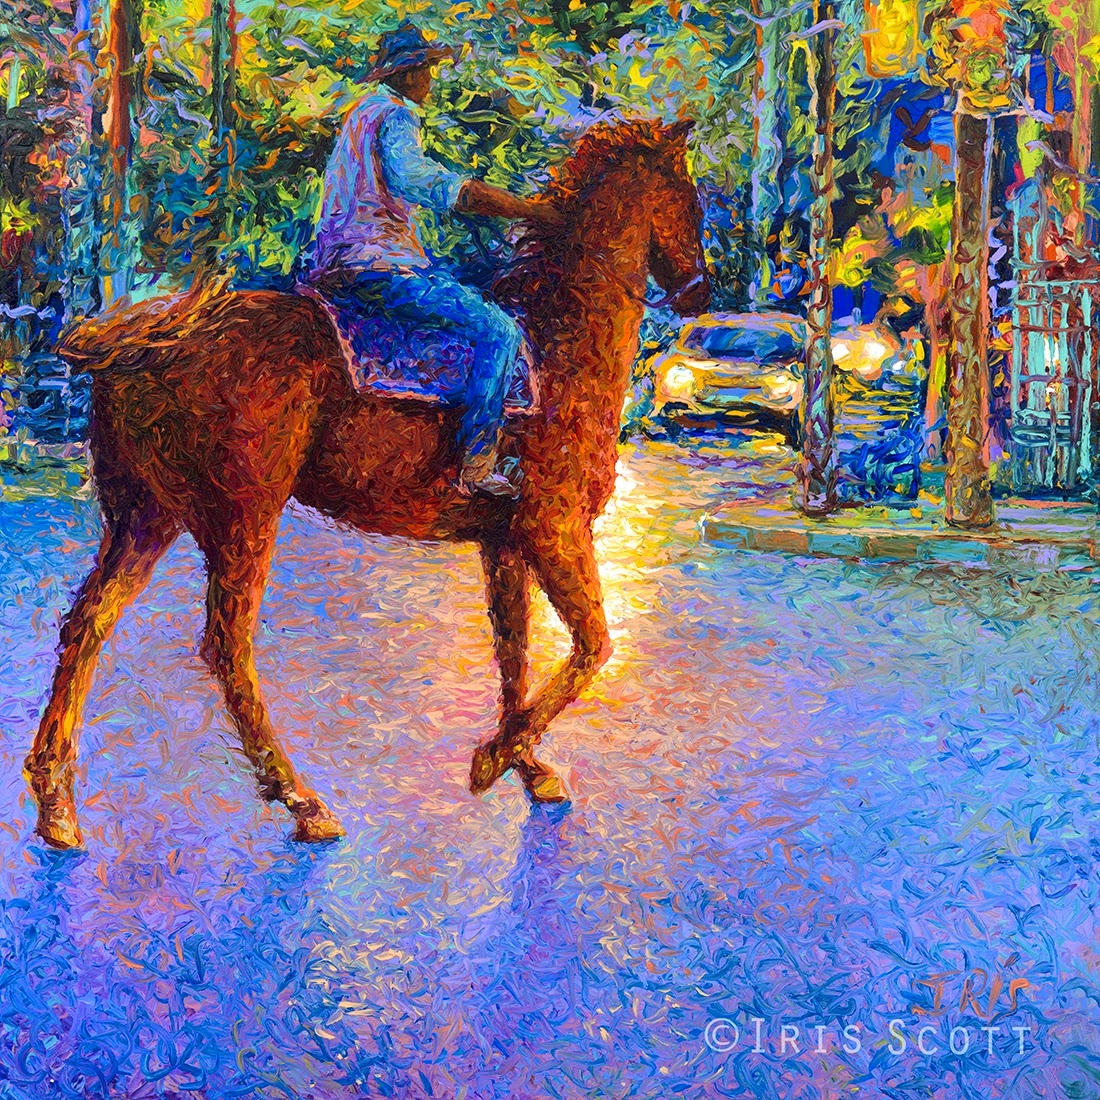 05-My-Thai-Cowboy-Iris-Scott-Finger-Painting-Fine-Art-www-designstack-co